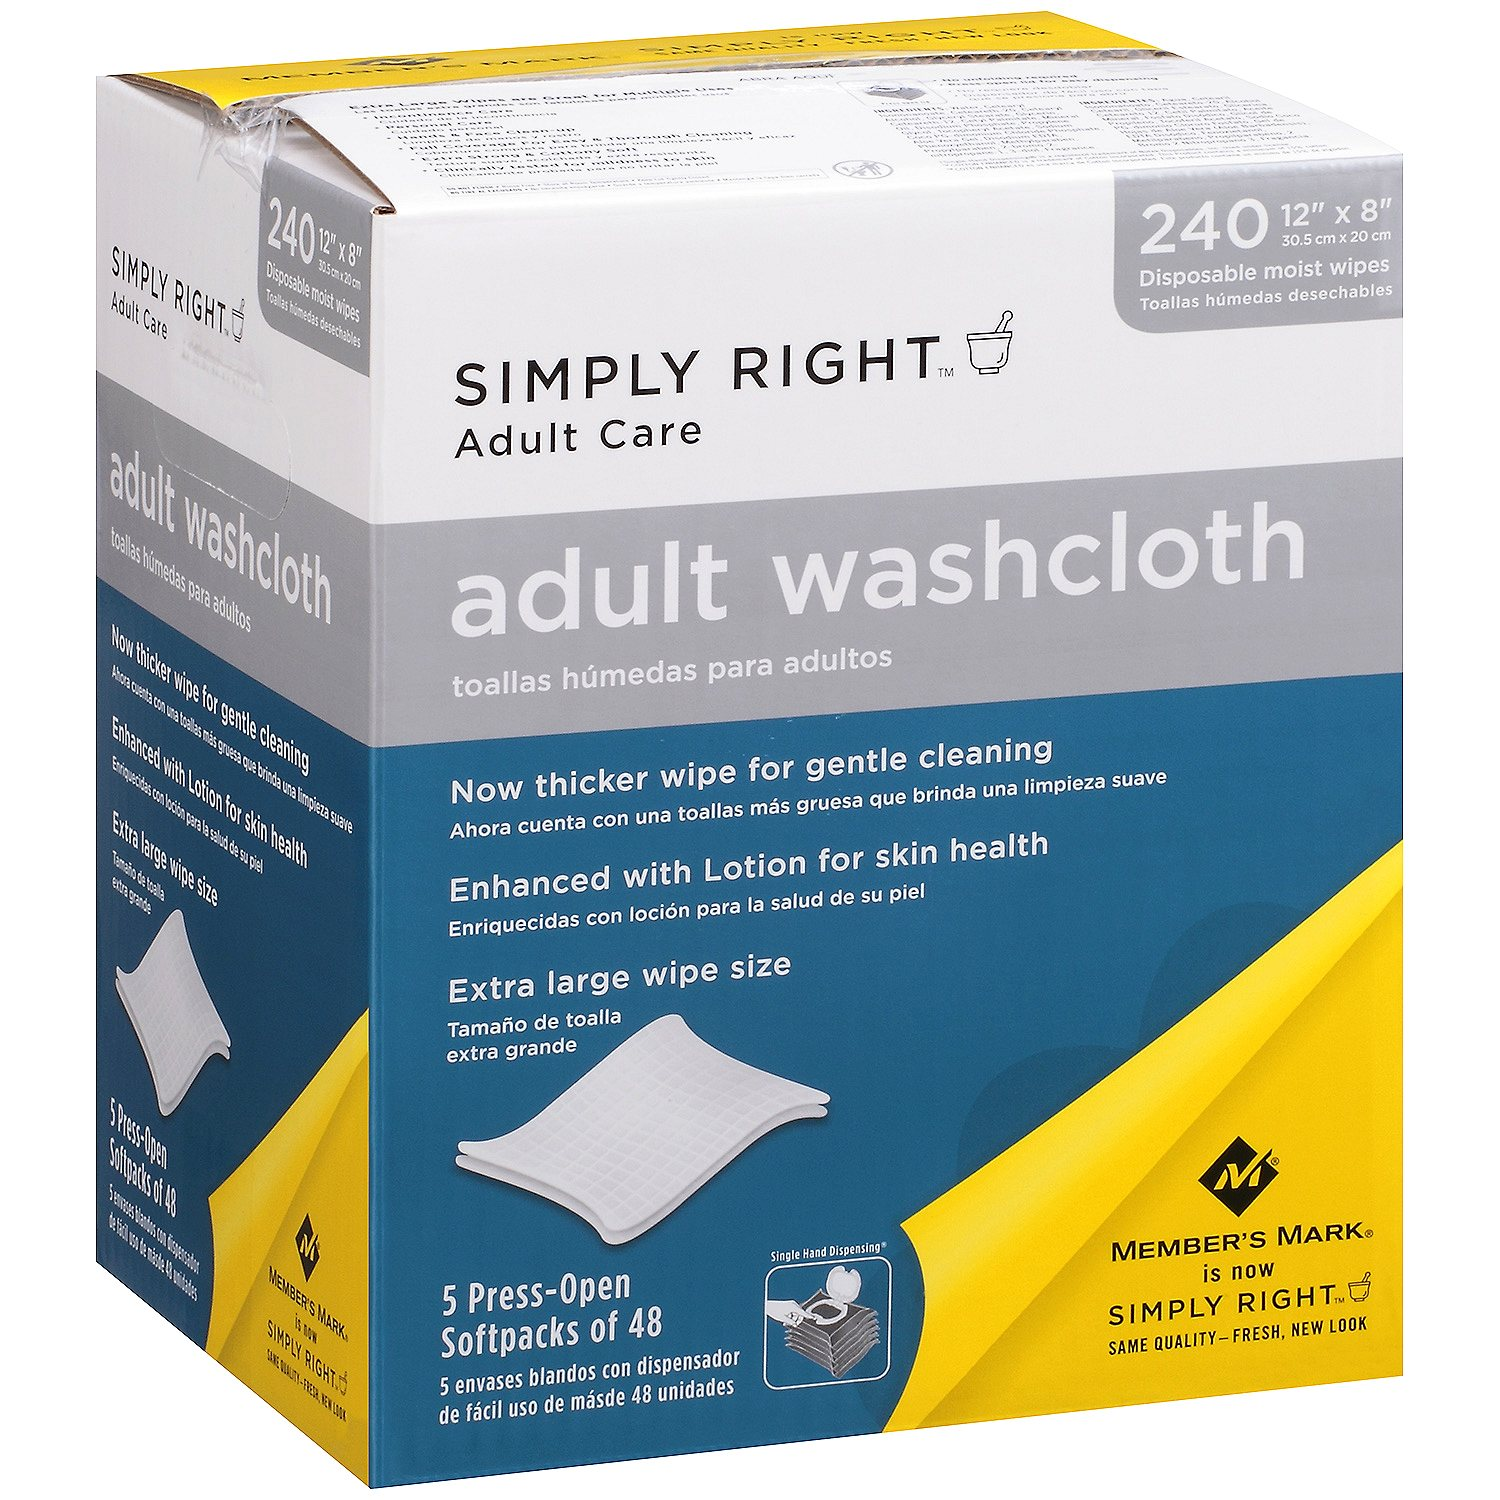 Adult incontinence washcloths have hit